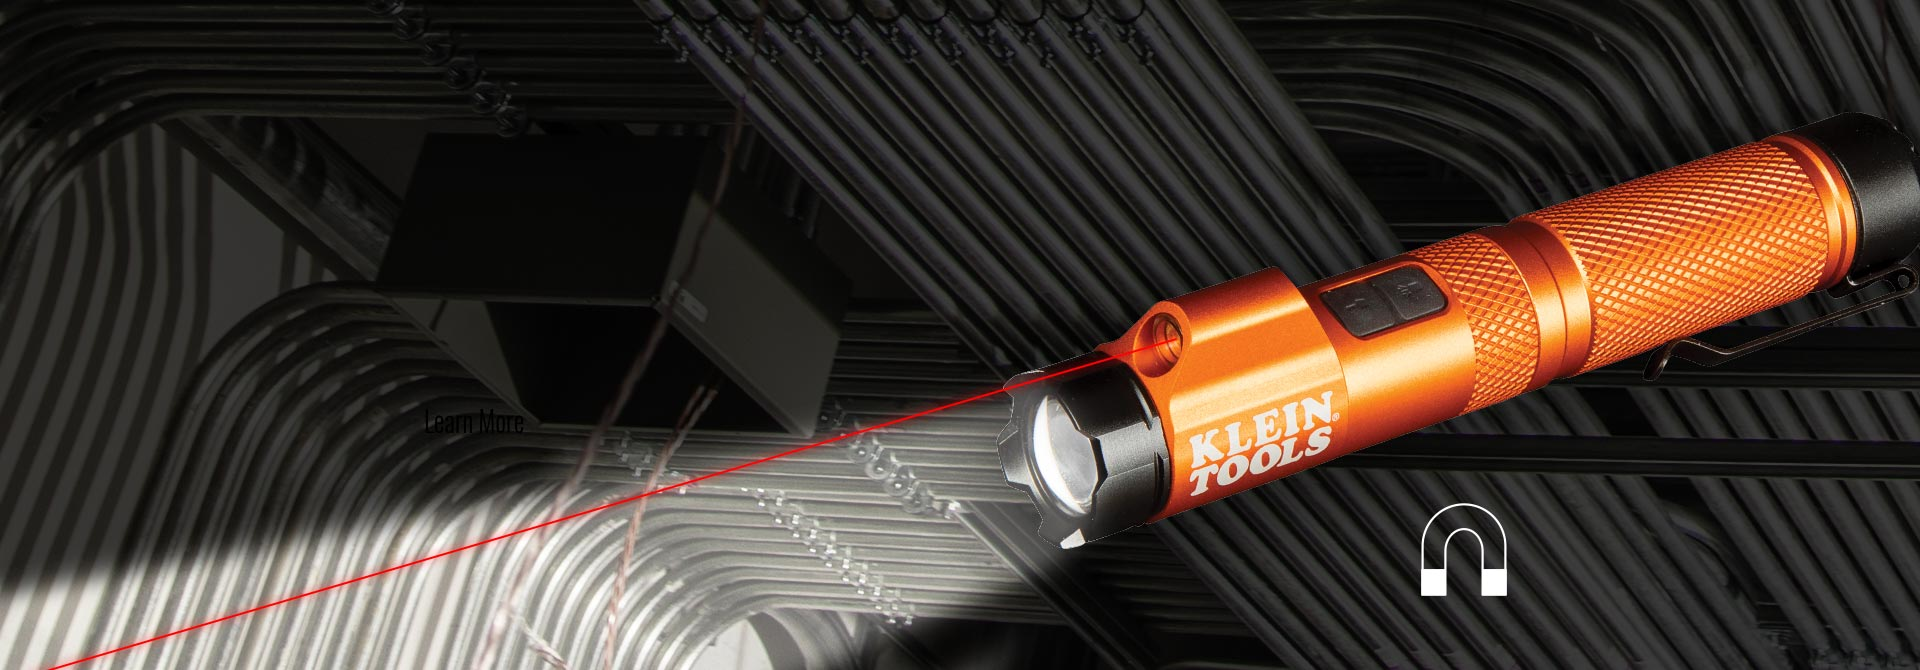 Rechargeable \r\nFocus Flashlight \r\nwith Laser